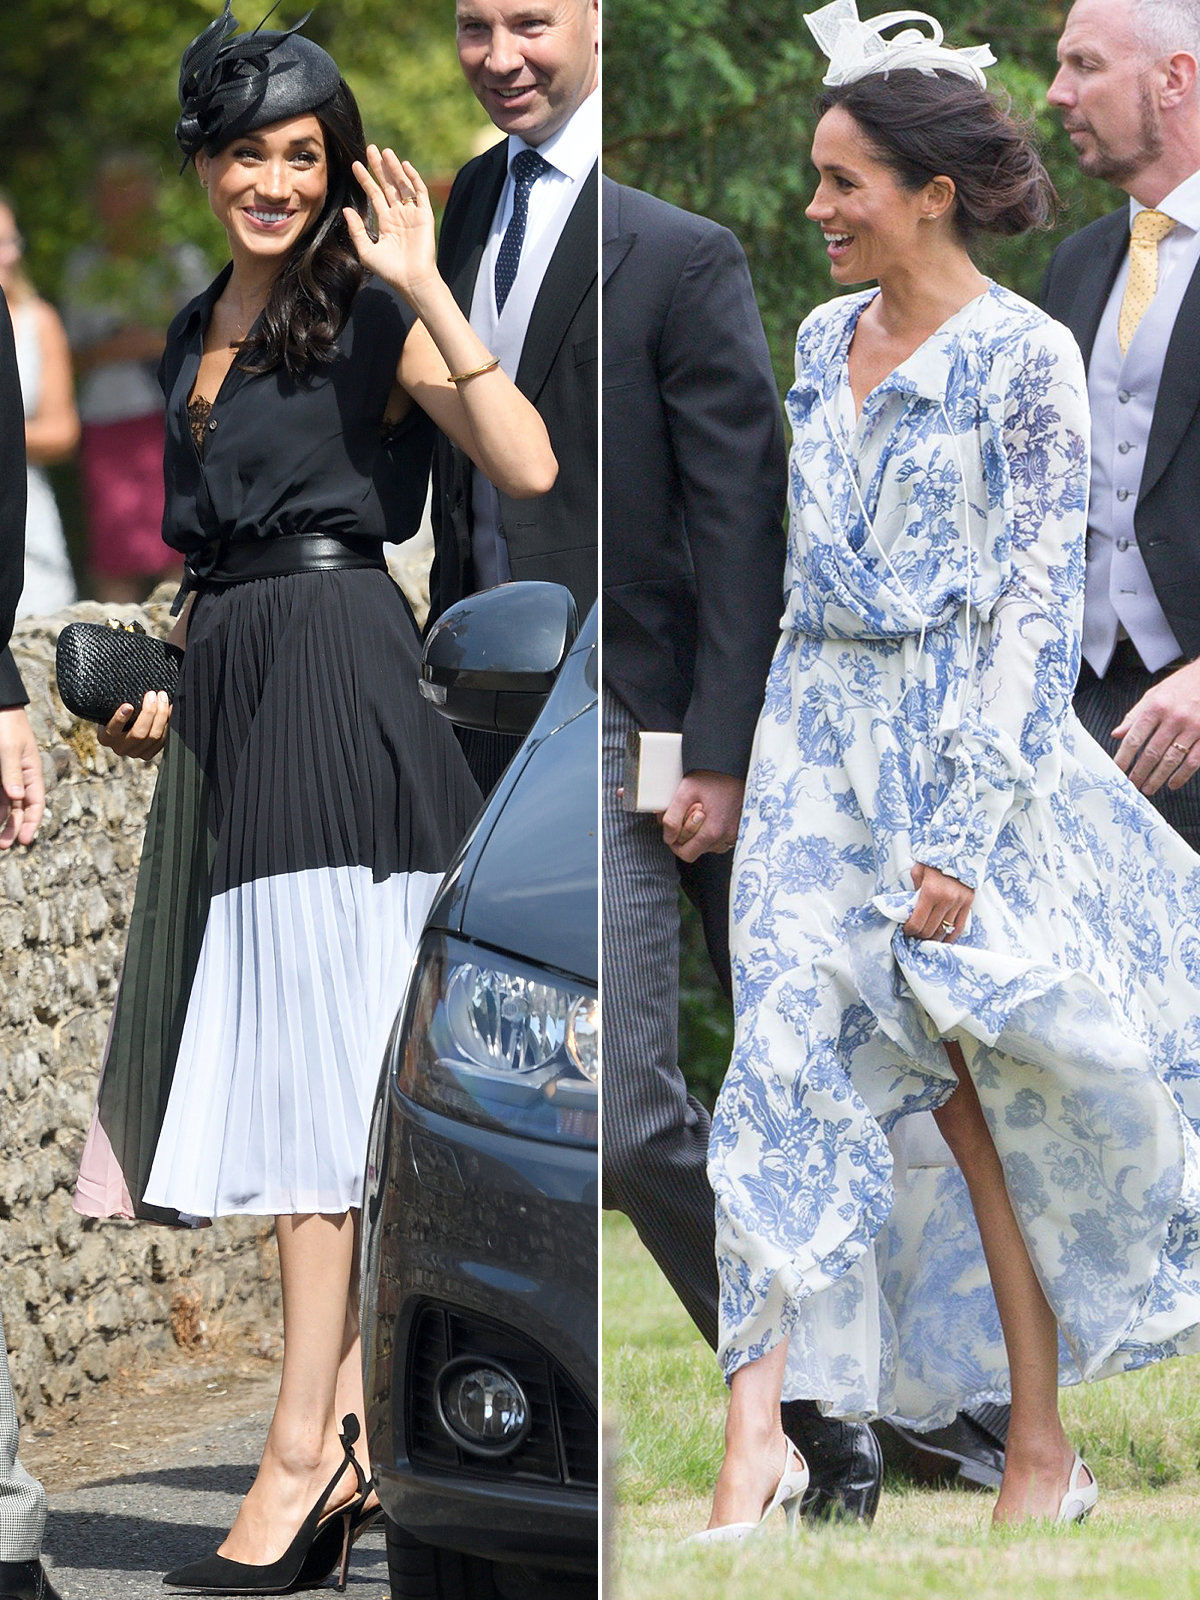 Meghan Markle S Two Summer Wedding Looks A Comparison People Com